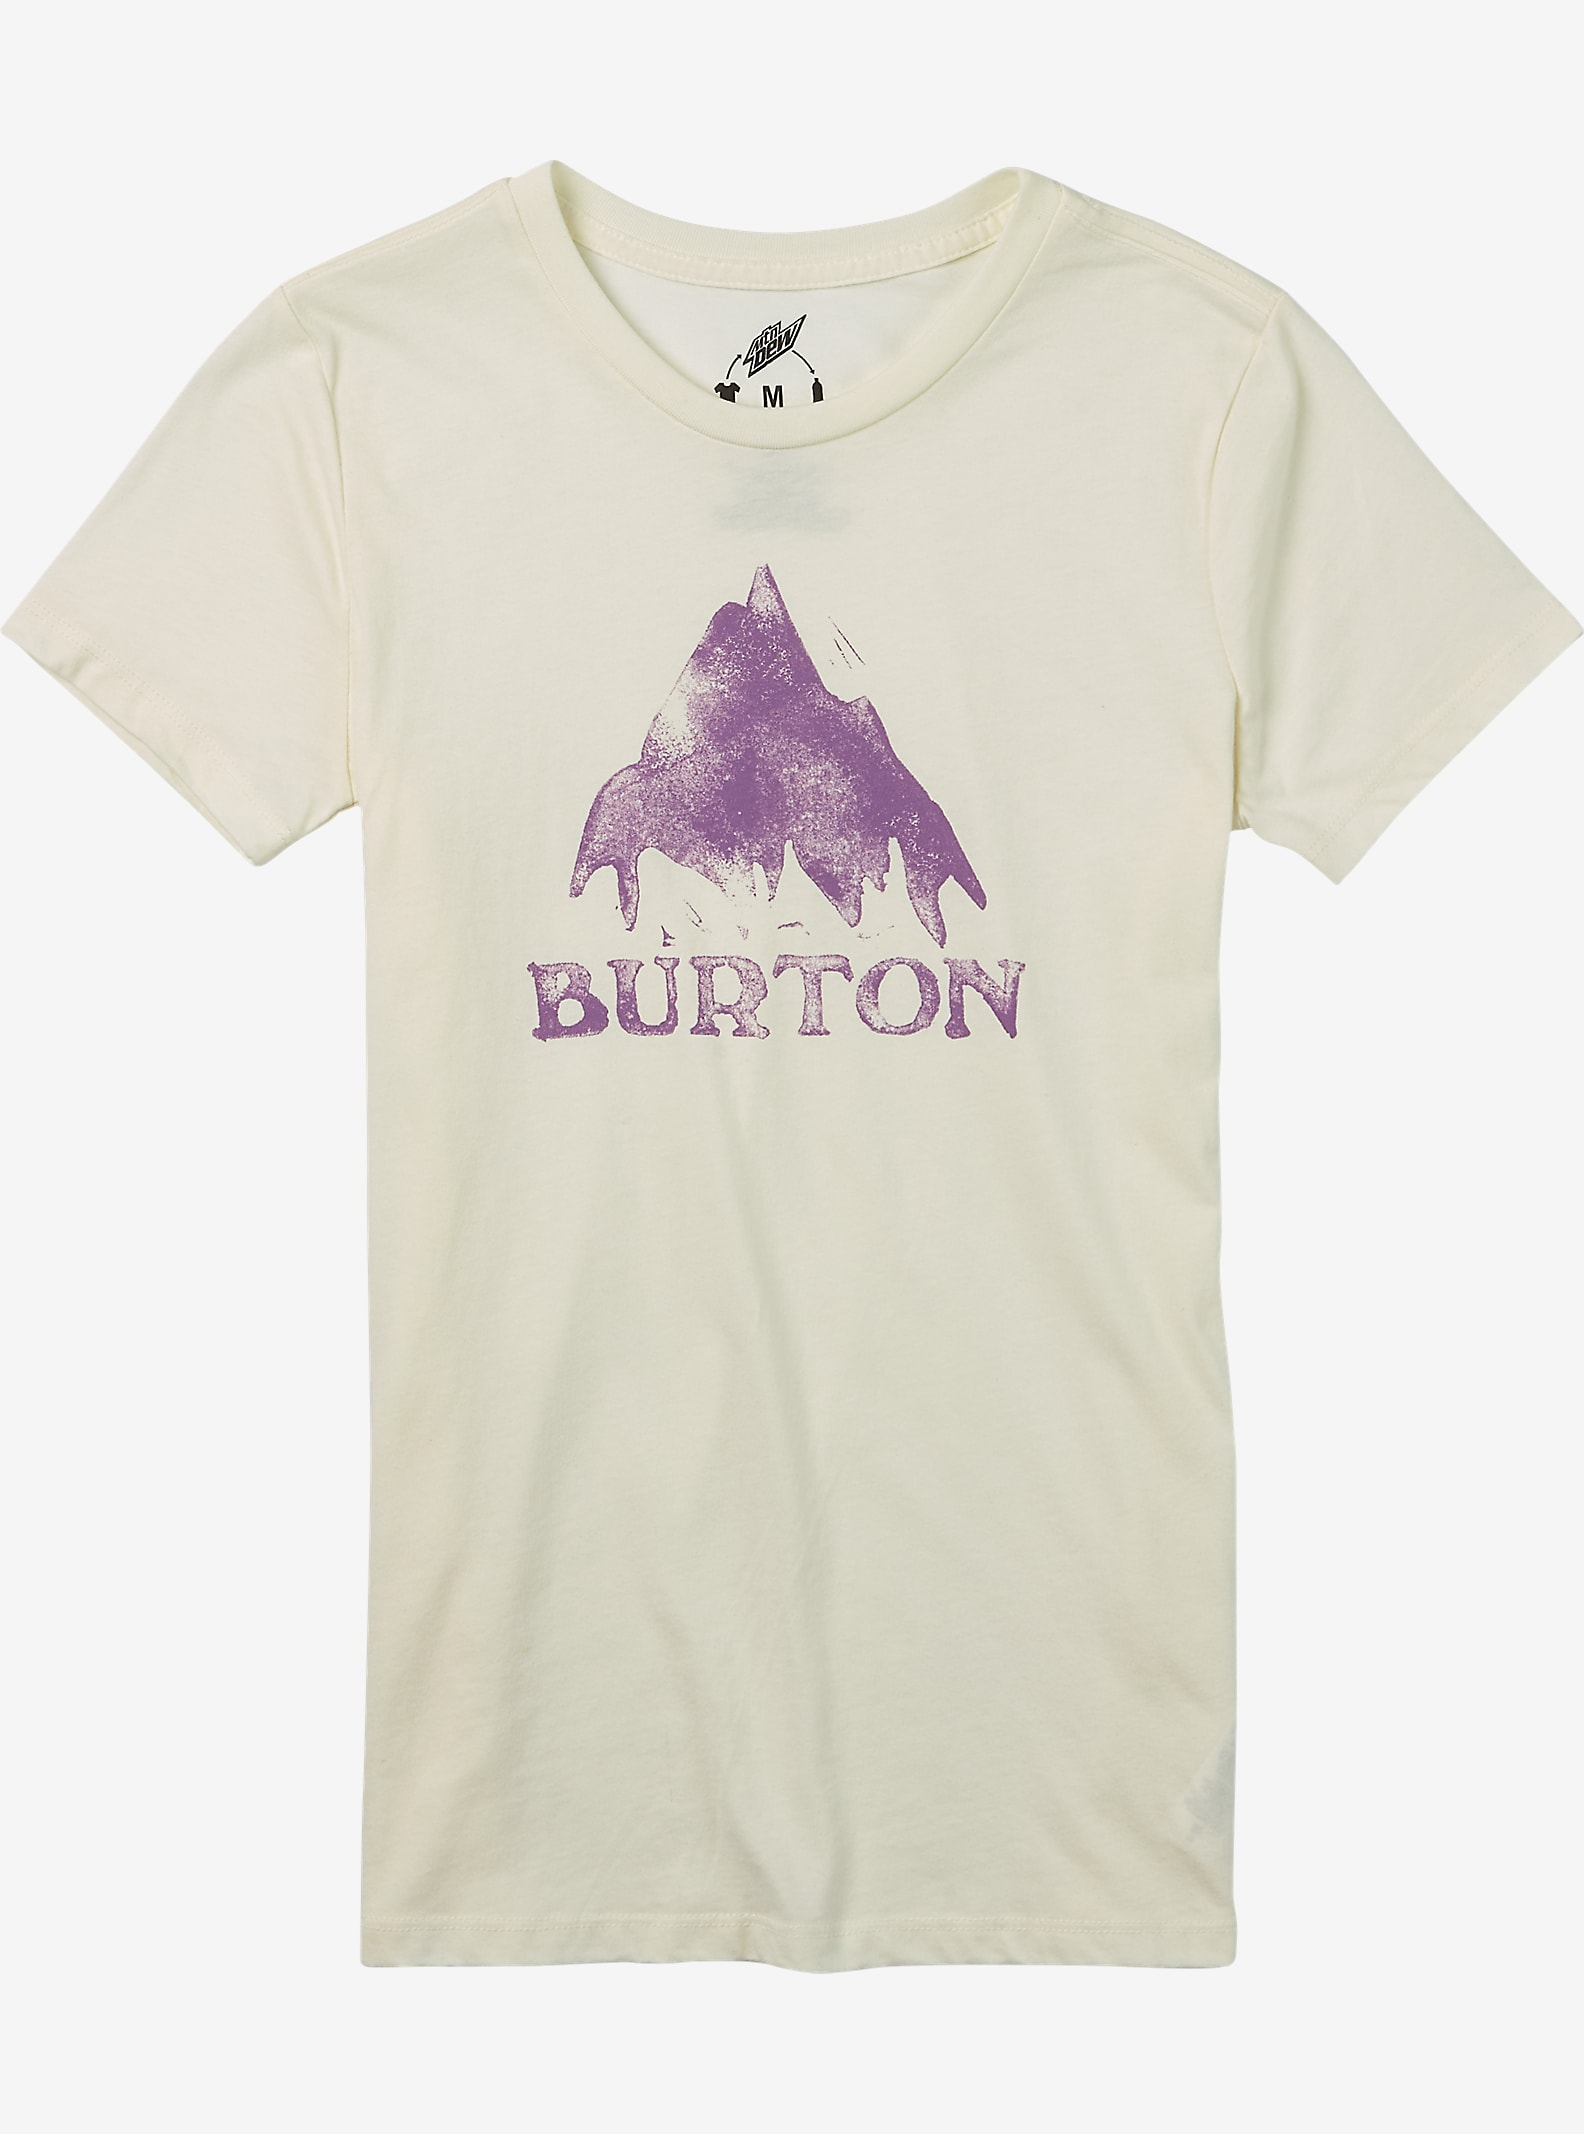 Burton Stamped Mountain Short Sleeve T Shirt shown in Vanilla Heather